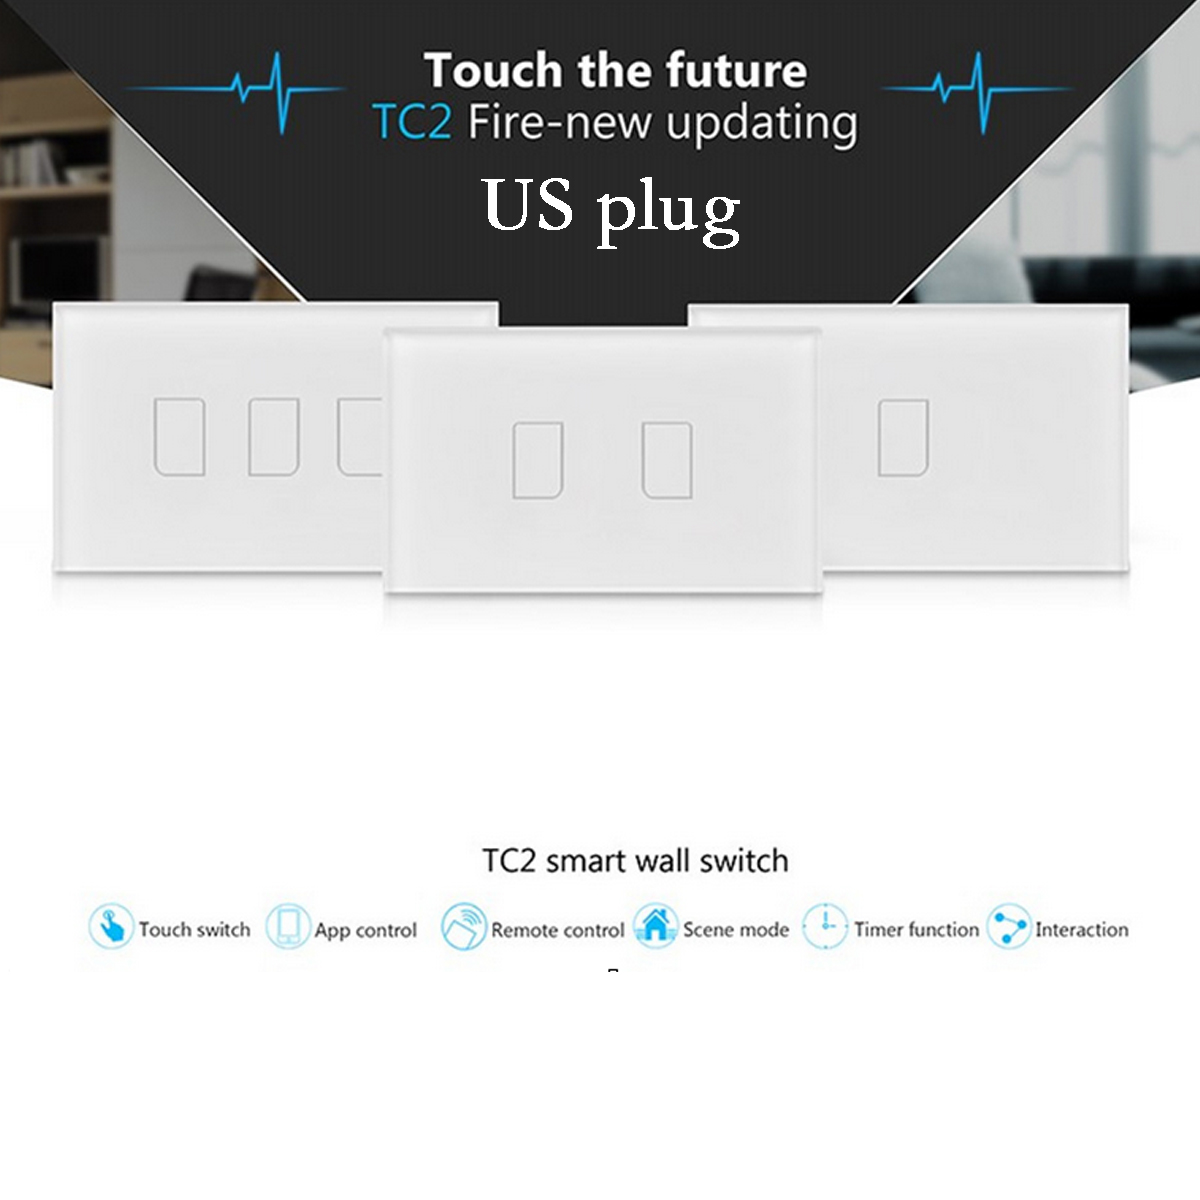 Details About Smart Broadlink Tc2 Wall Touch Light Switch Panel 433mhz Wifi Rf Remote Control Switches Require No Wiring Gizmodo Australia